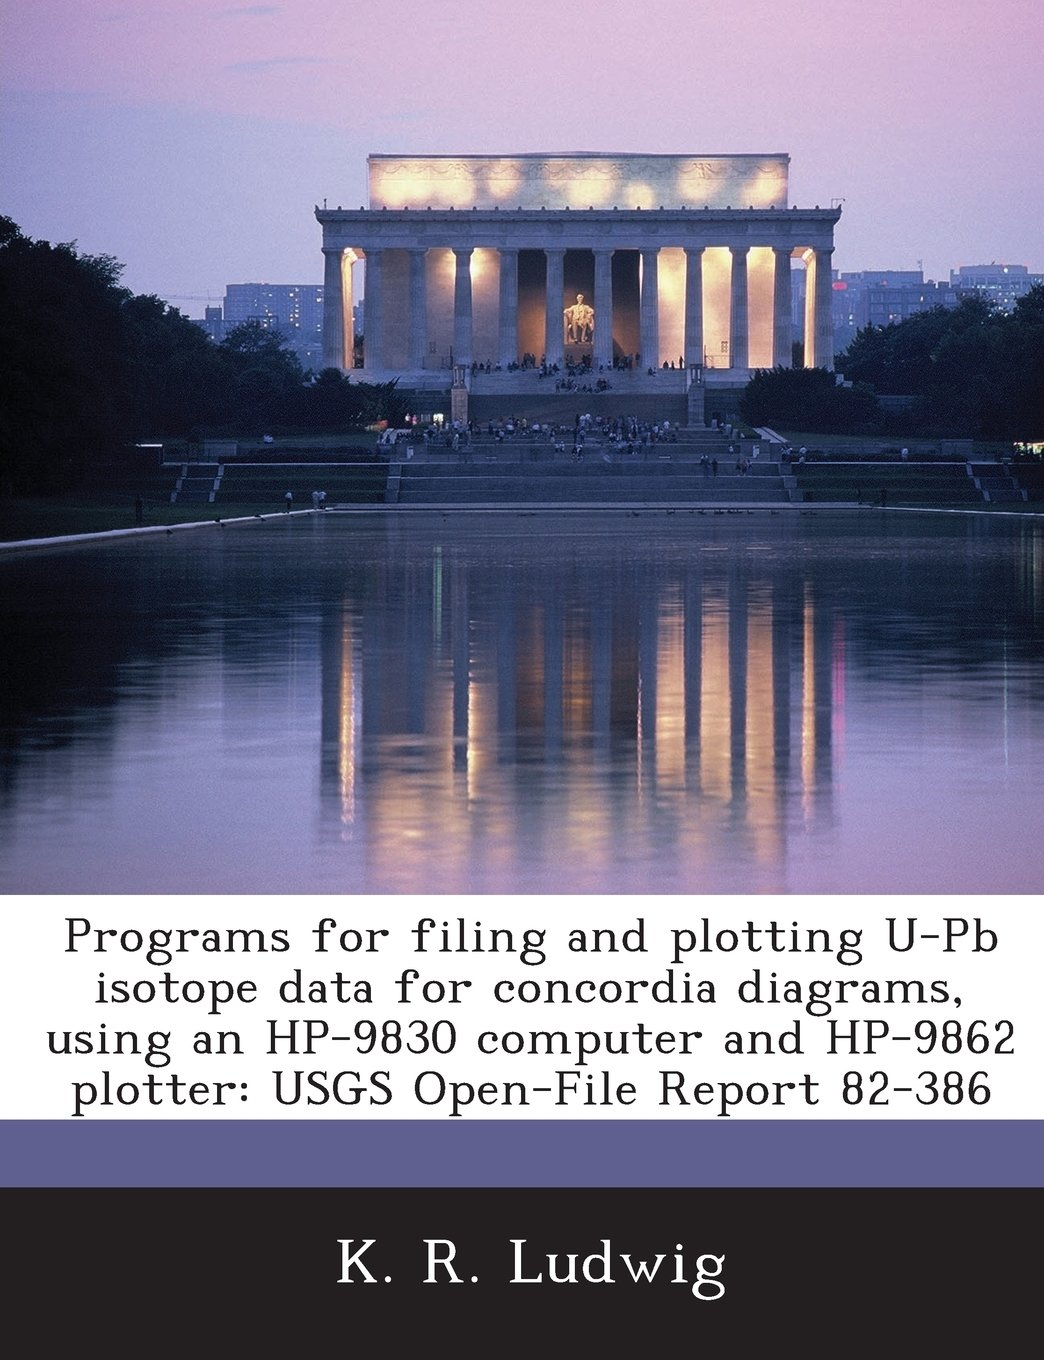 Programs for filing and plotting U-Pb isotope data for concordia diagrams, using an HP-9830 computer and HP-9862 plotter: USGS Open-File Report 82-386: Amazon.es: Ludwig, K. R.: Libros en idiomas extranjeros